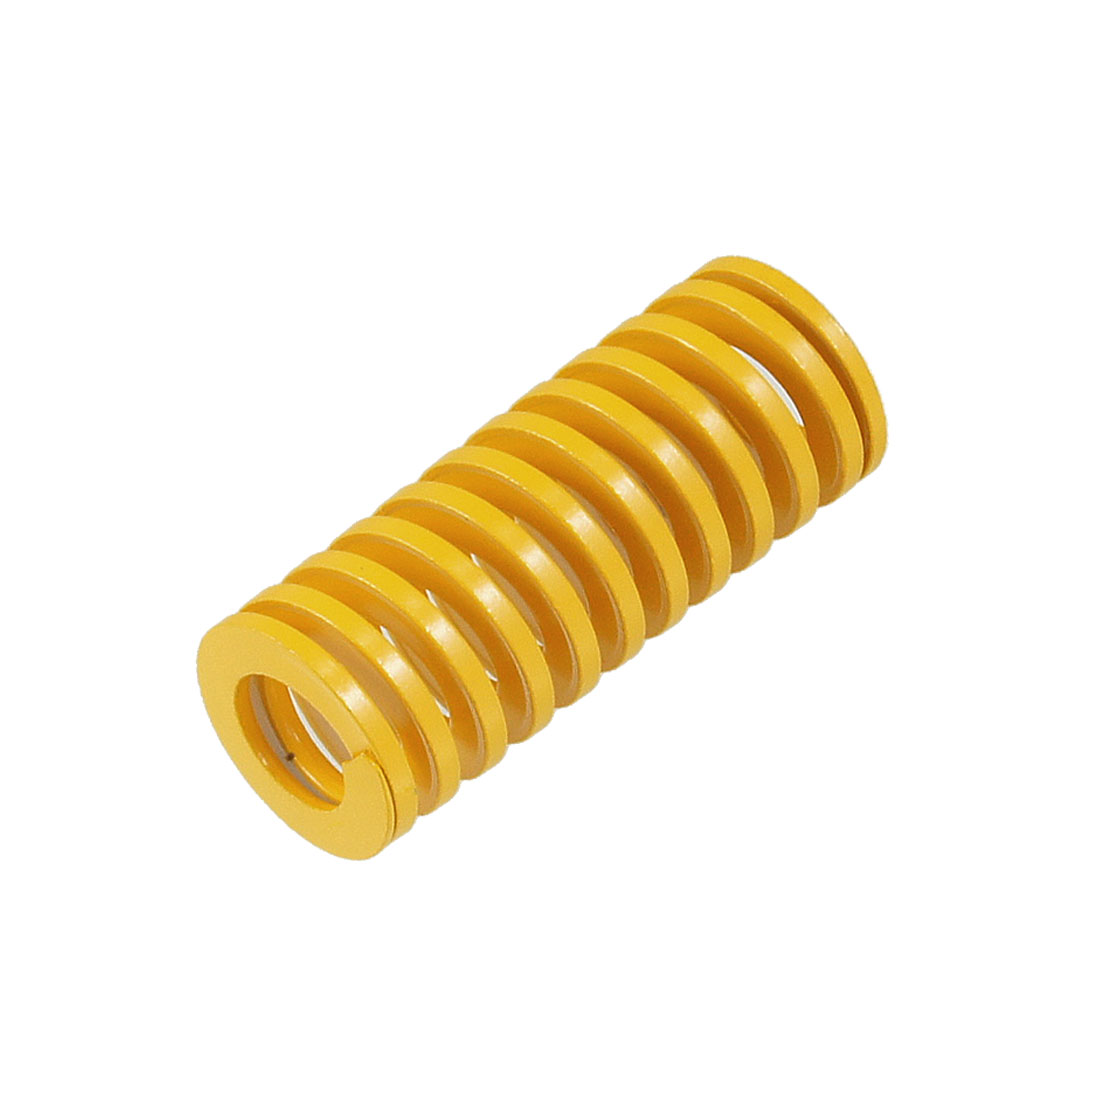 20mm x 11mm x 50mm Rectangular Section Mold Mould Die Spring